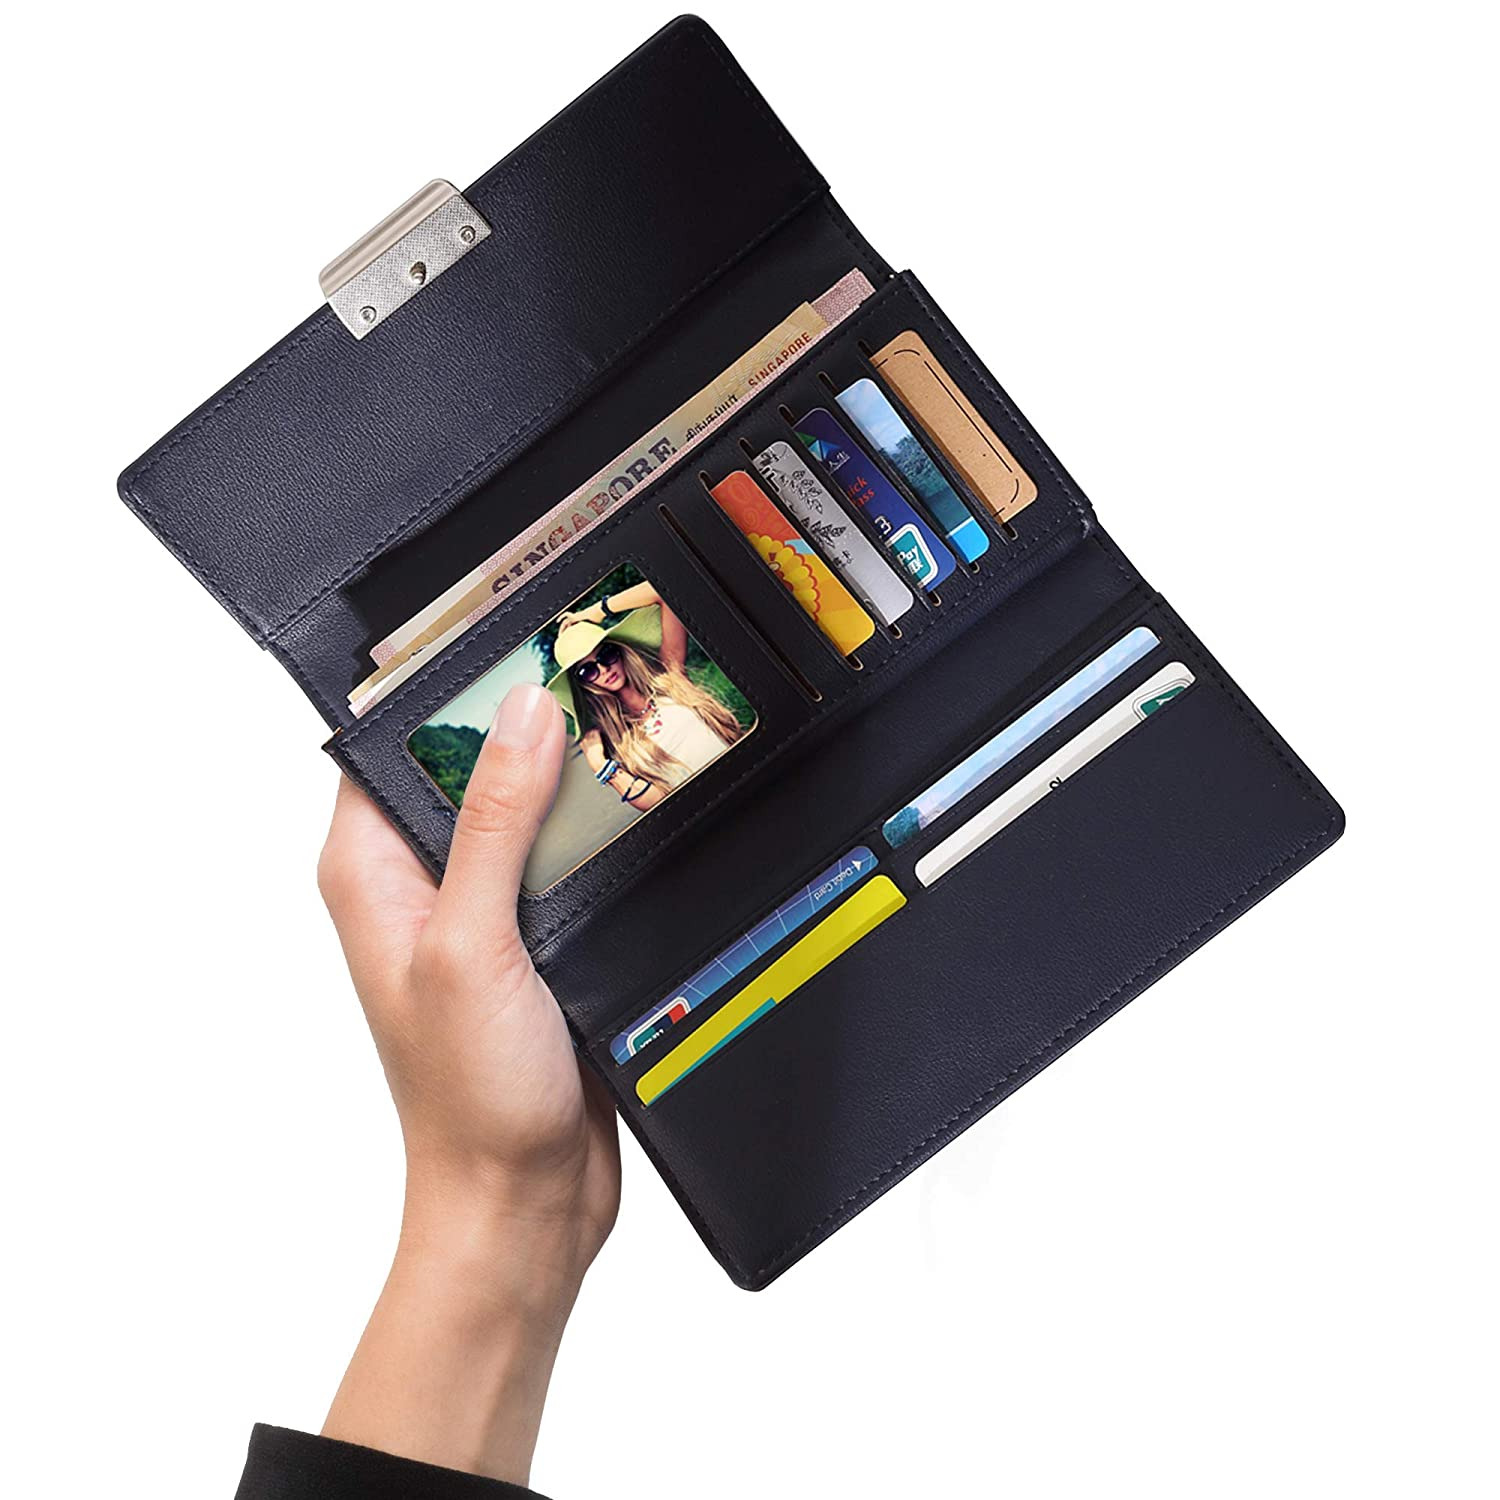 RFID Blocking Wallets for Women. Stylish Leather Clutch With RFID Protection (Trifold) For Safe Travel Anywhere.